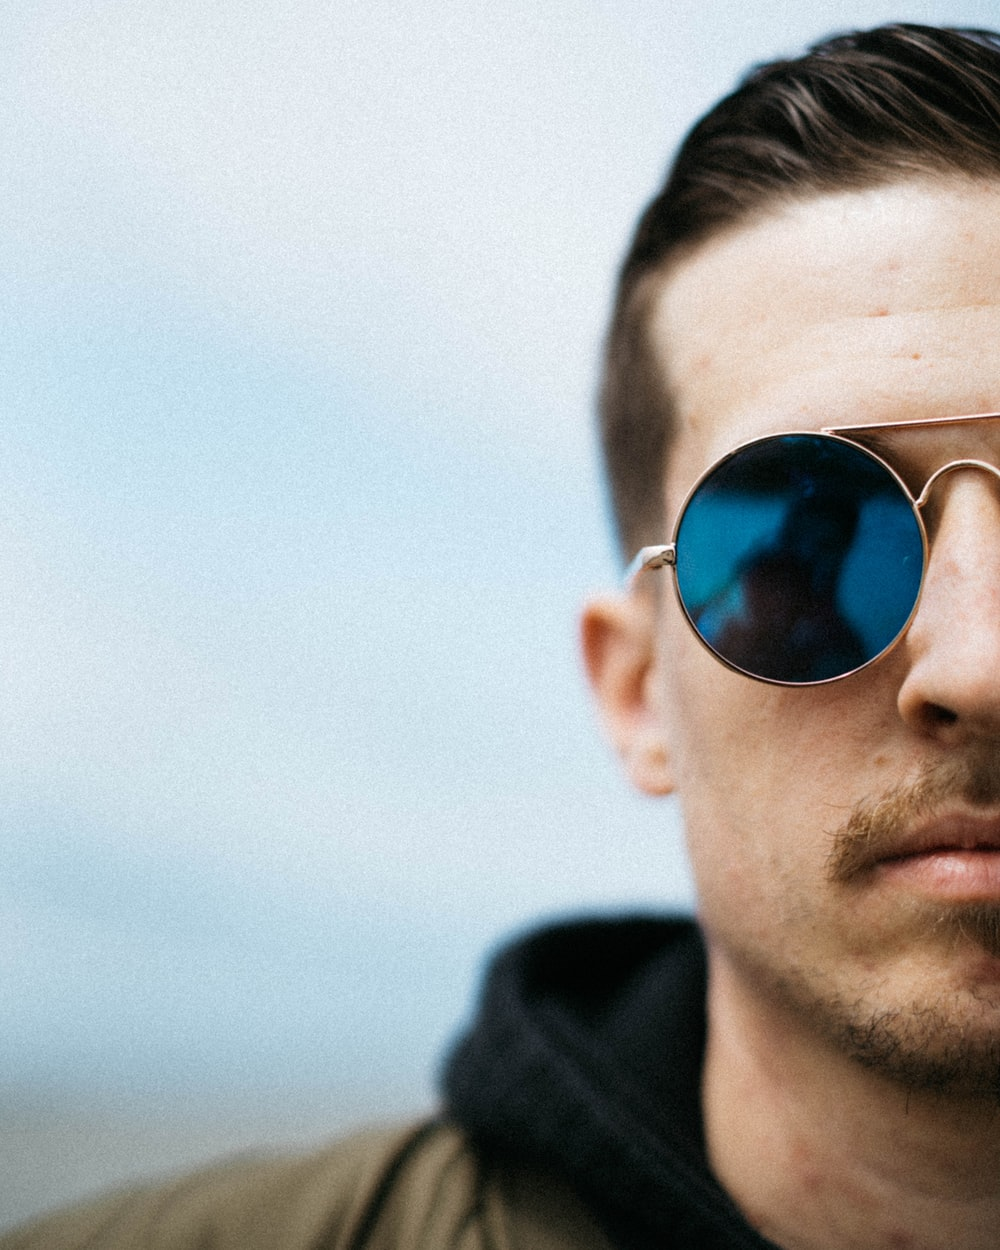 man wearing gold-framed sunglasses with blue lens